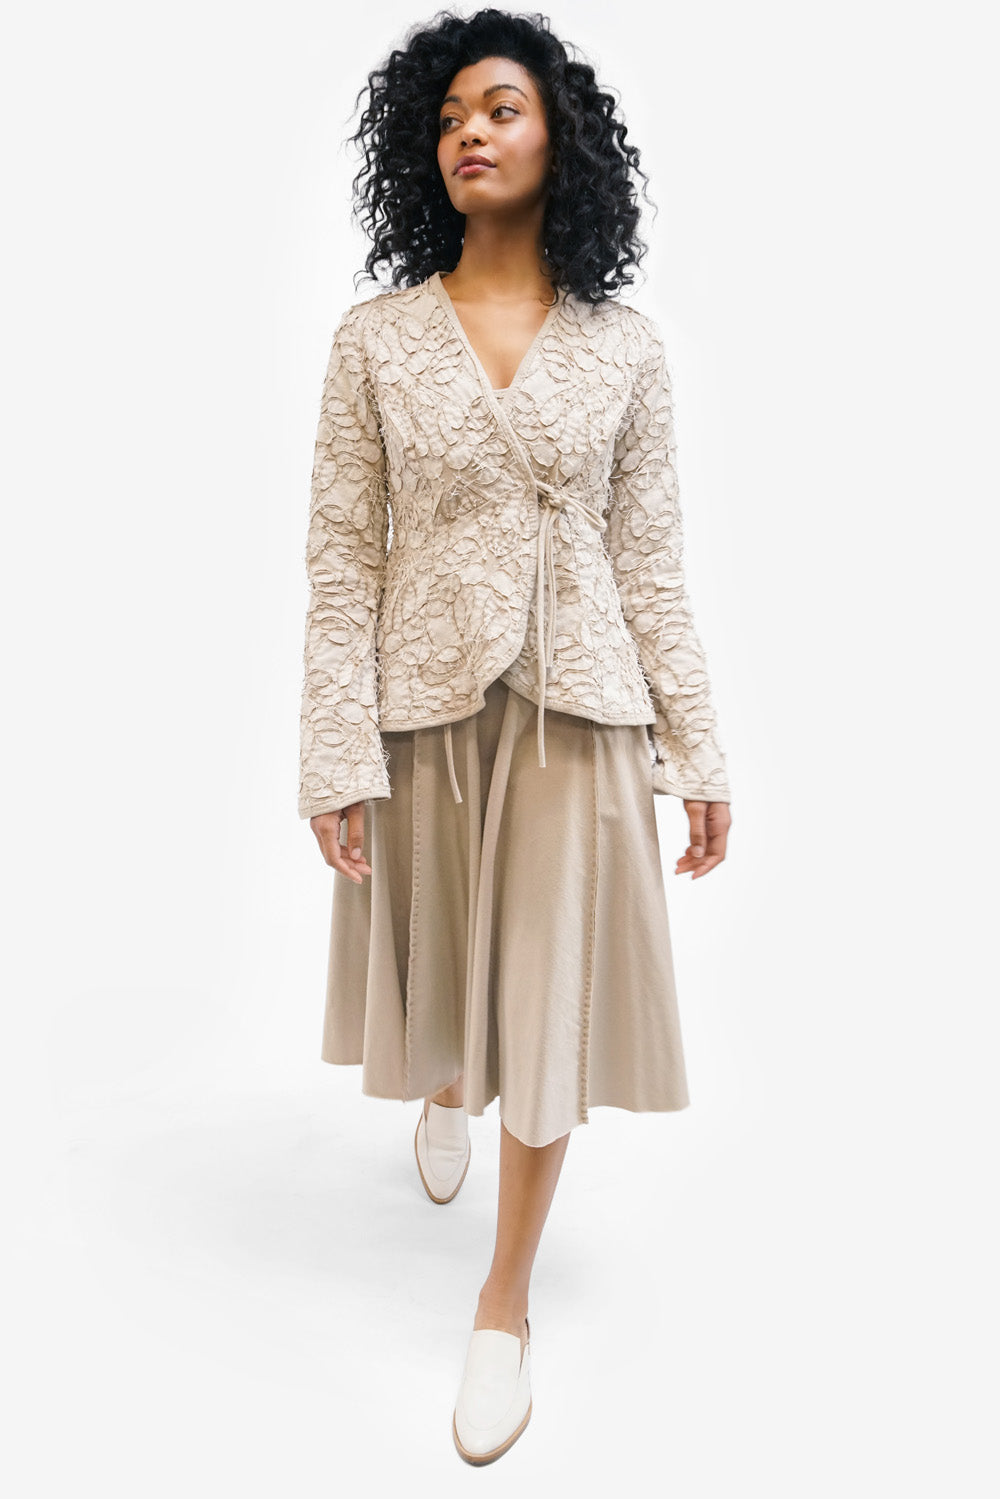 Alabama Chanin Rosamund Cardigan Hand Sewn Women's Wrap Top in Sand Organic Cotton